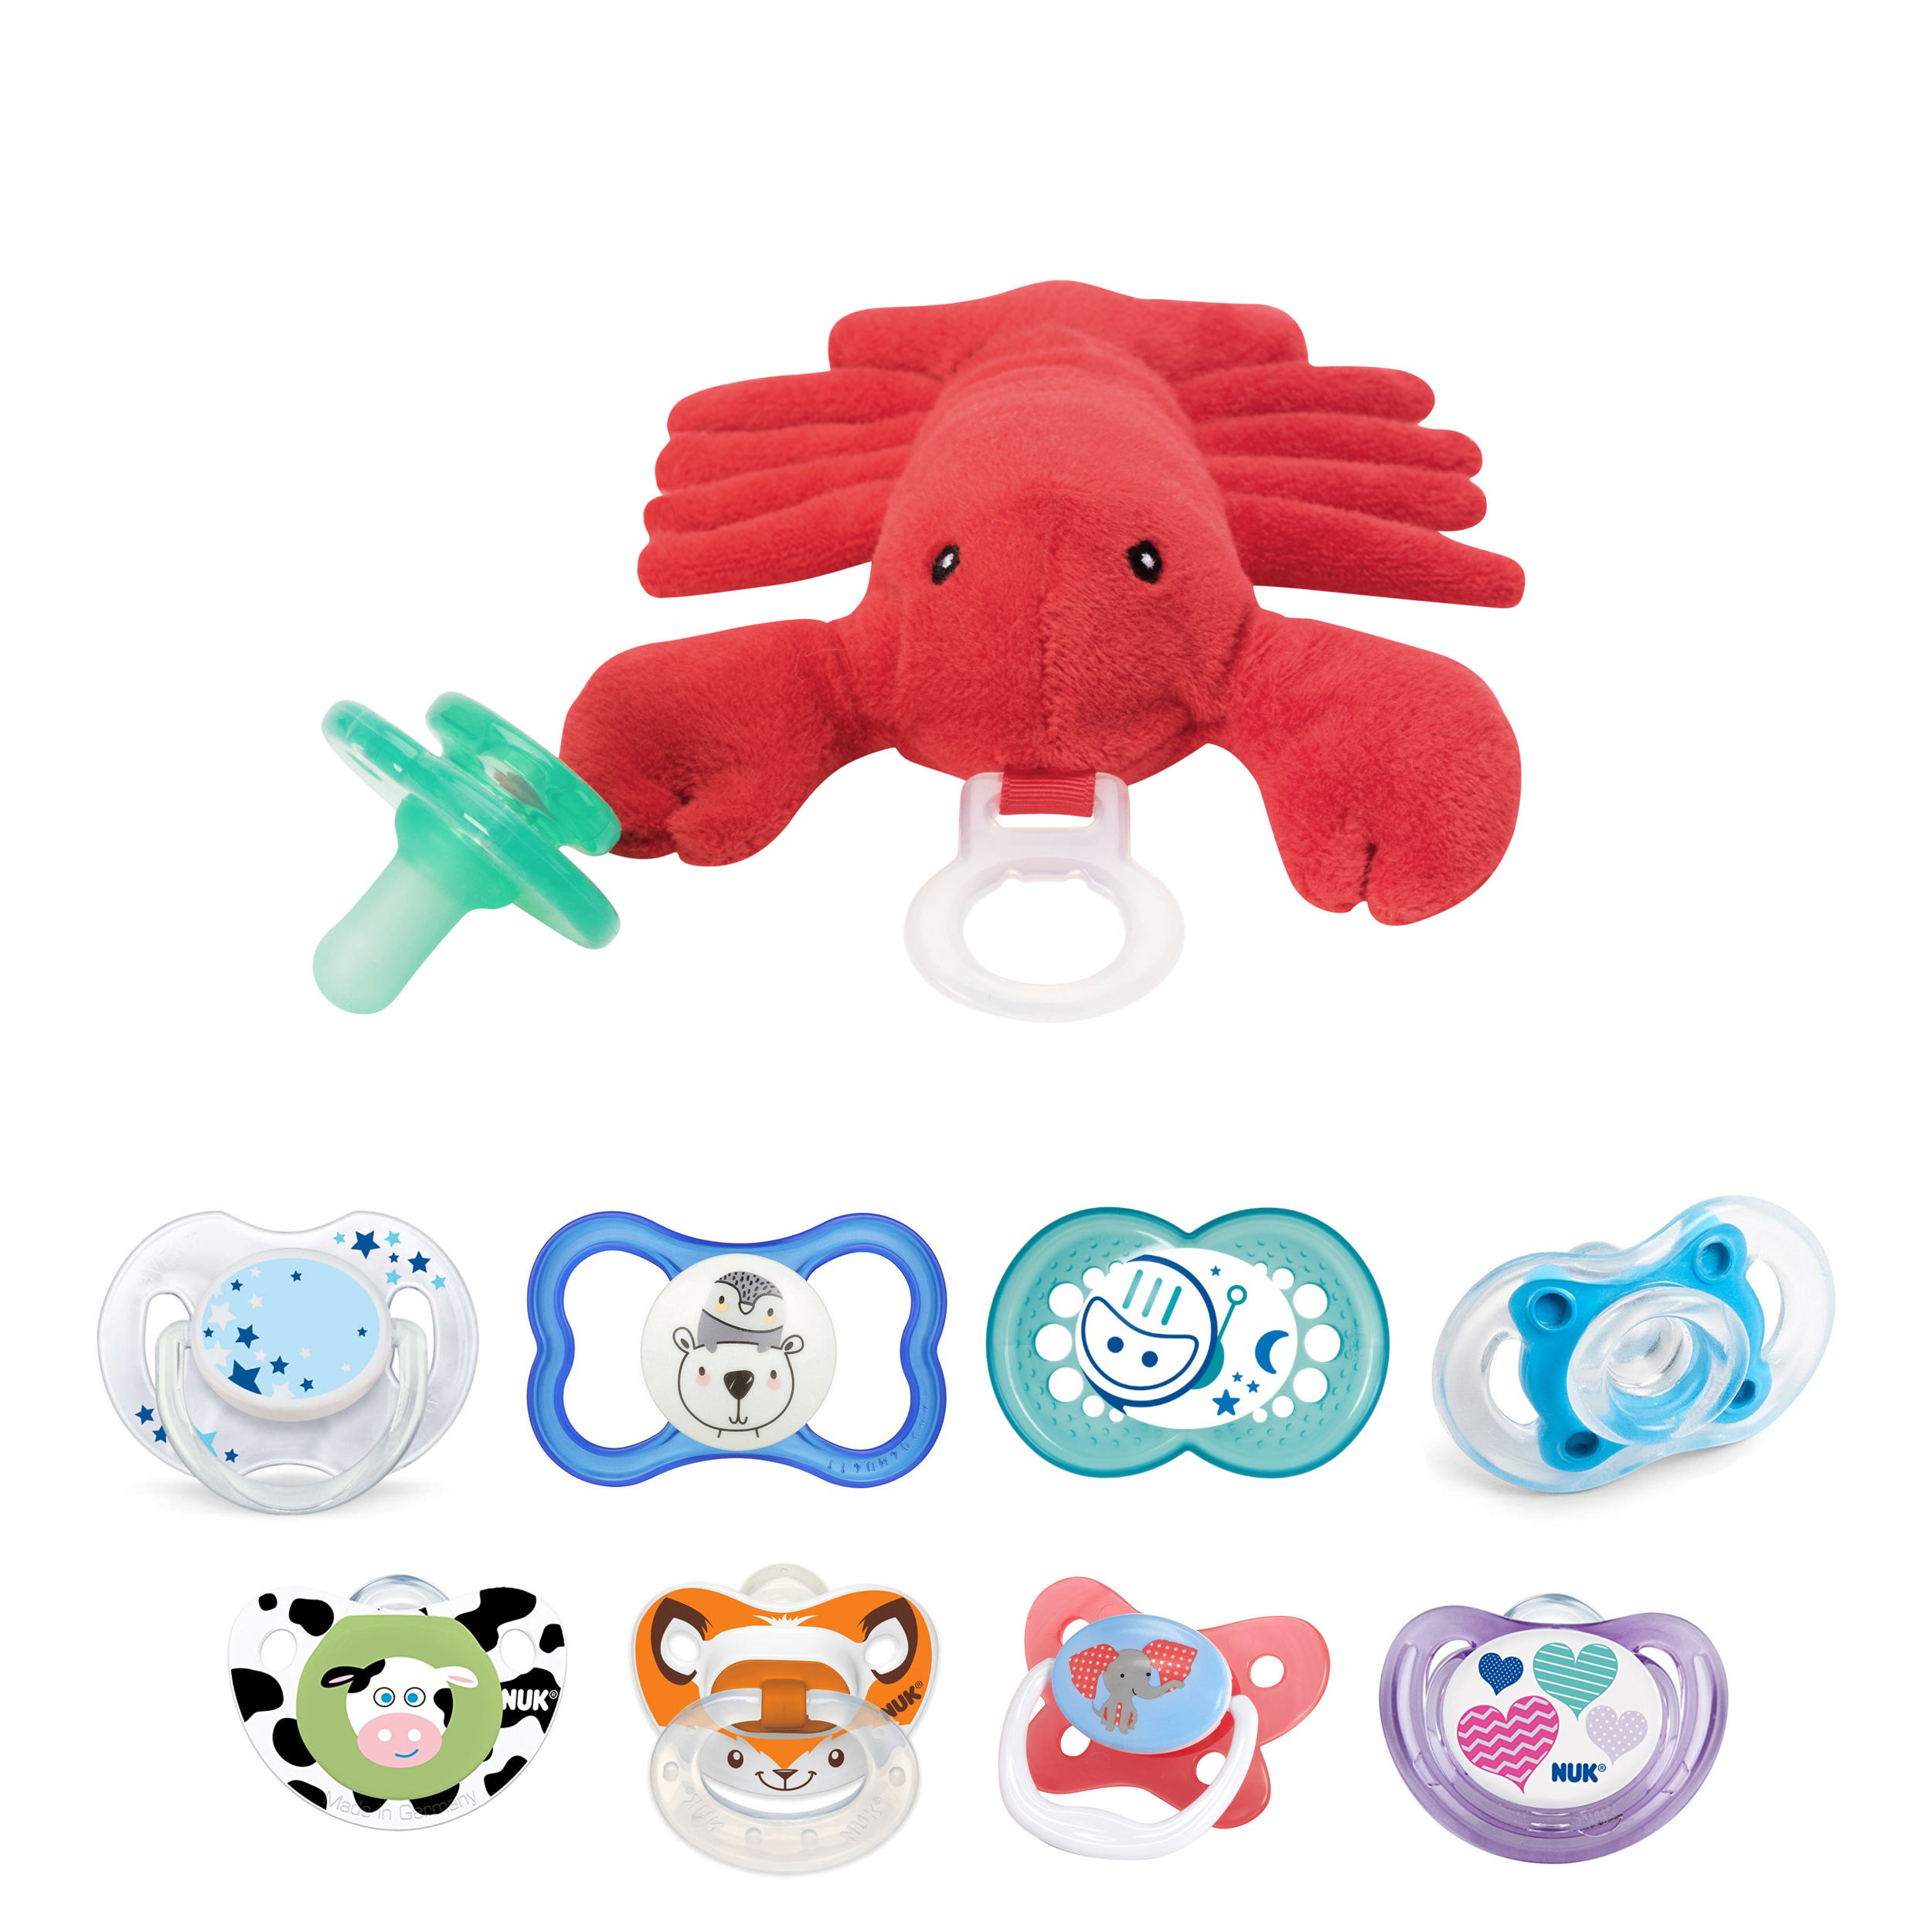 PP1575 Lexi Lobster with pacifier assortment copy.png